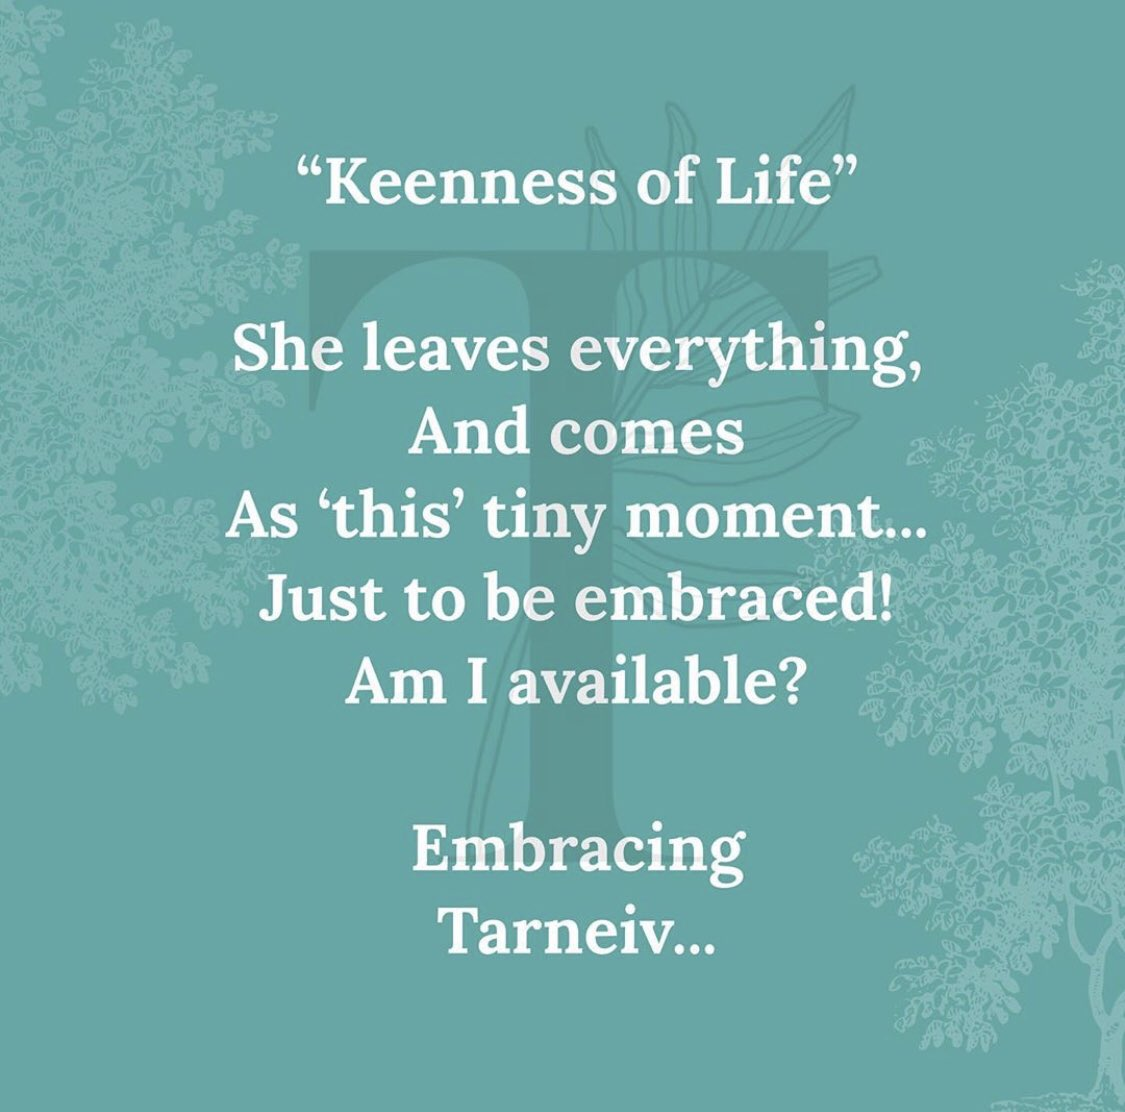 """""""Keenness of Life"""" She leaves everything And comes as 'this' tiny moment... Just to be embraced! Am I avilable? Embracing  Tarneiv ... #MondayMorning https://t.co/Z1mIdD1ASp"""